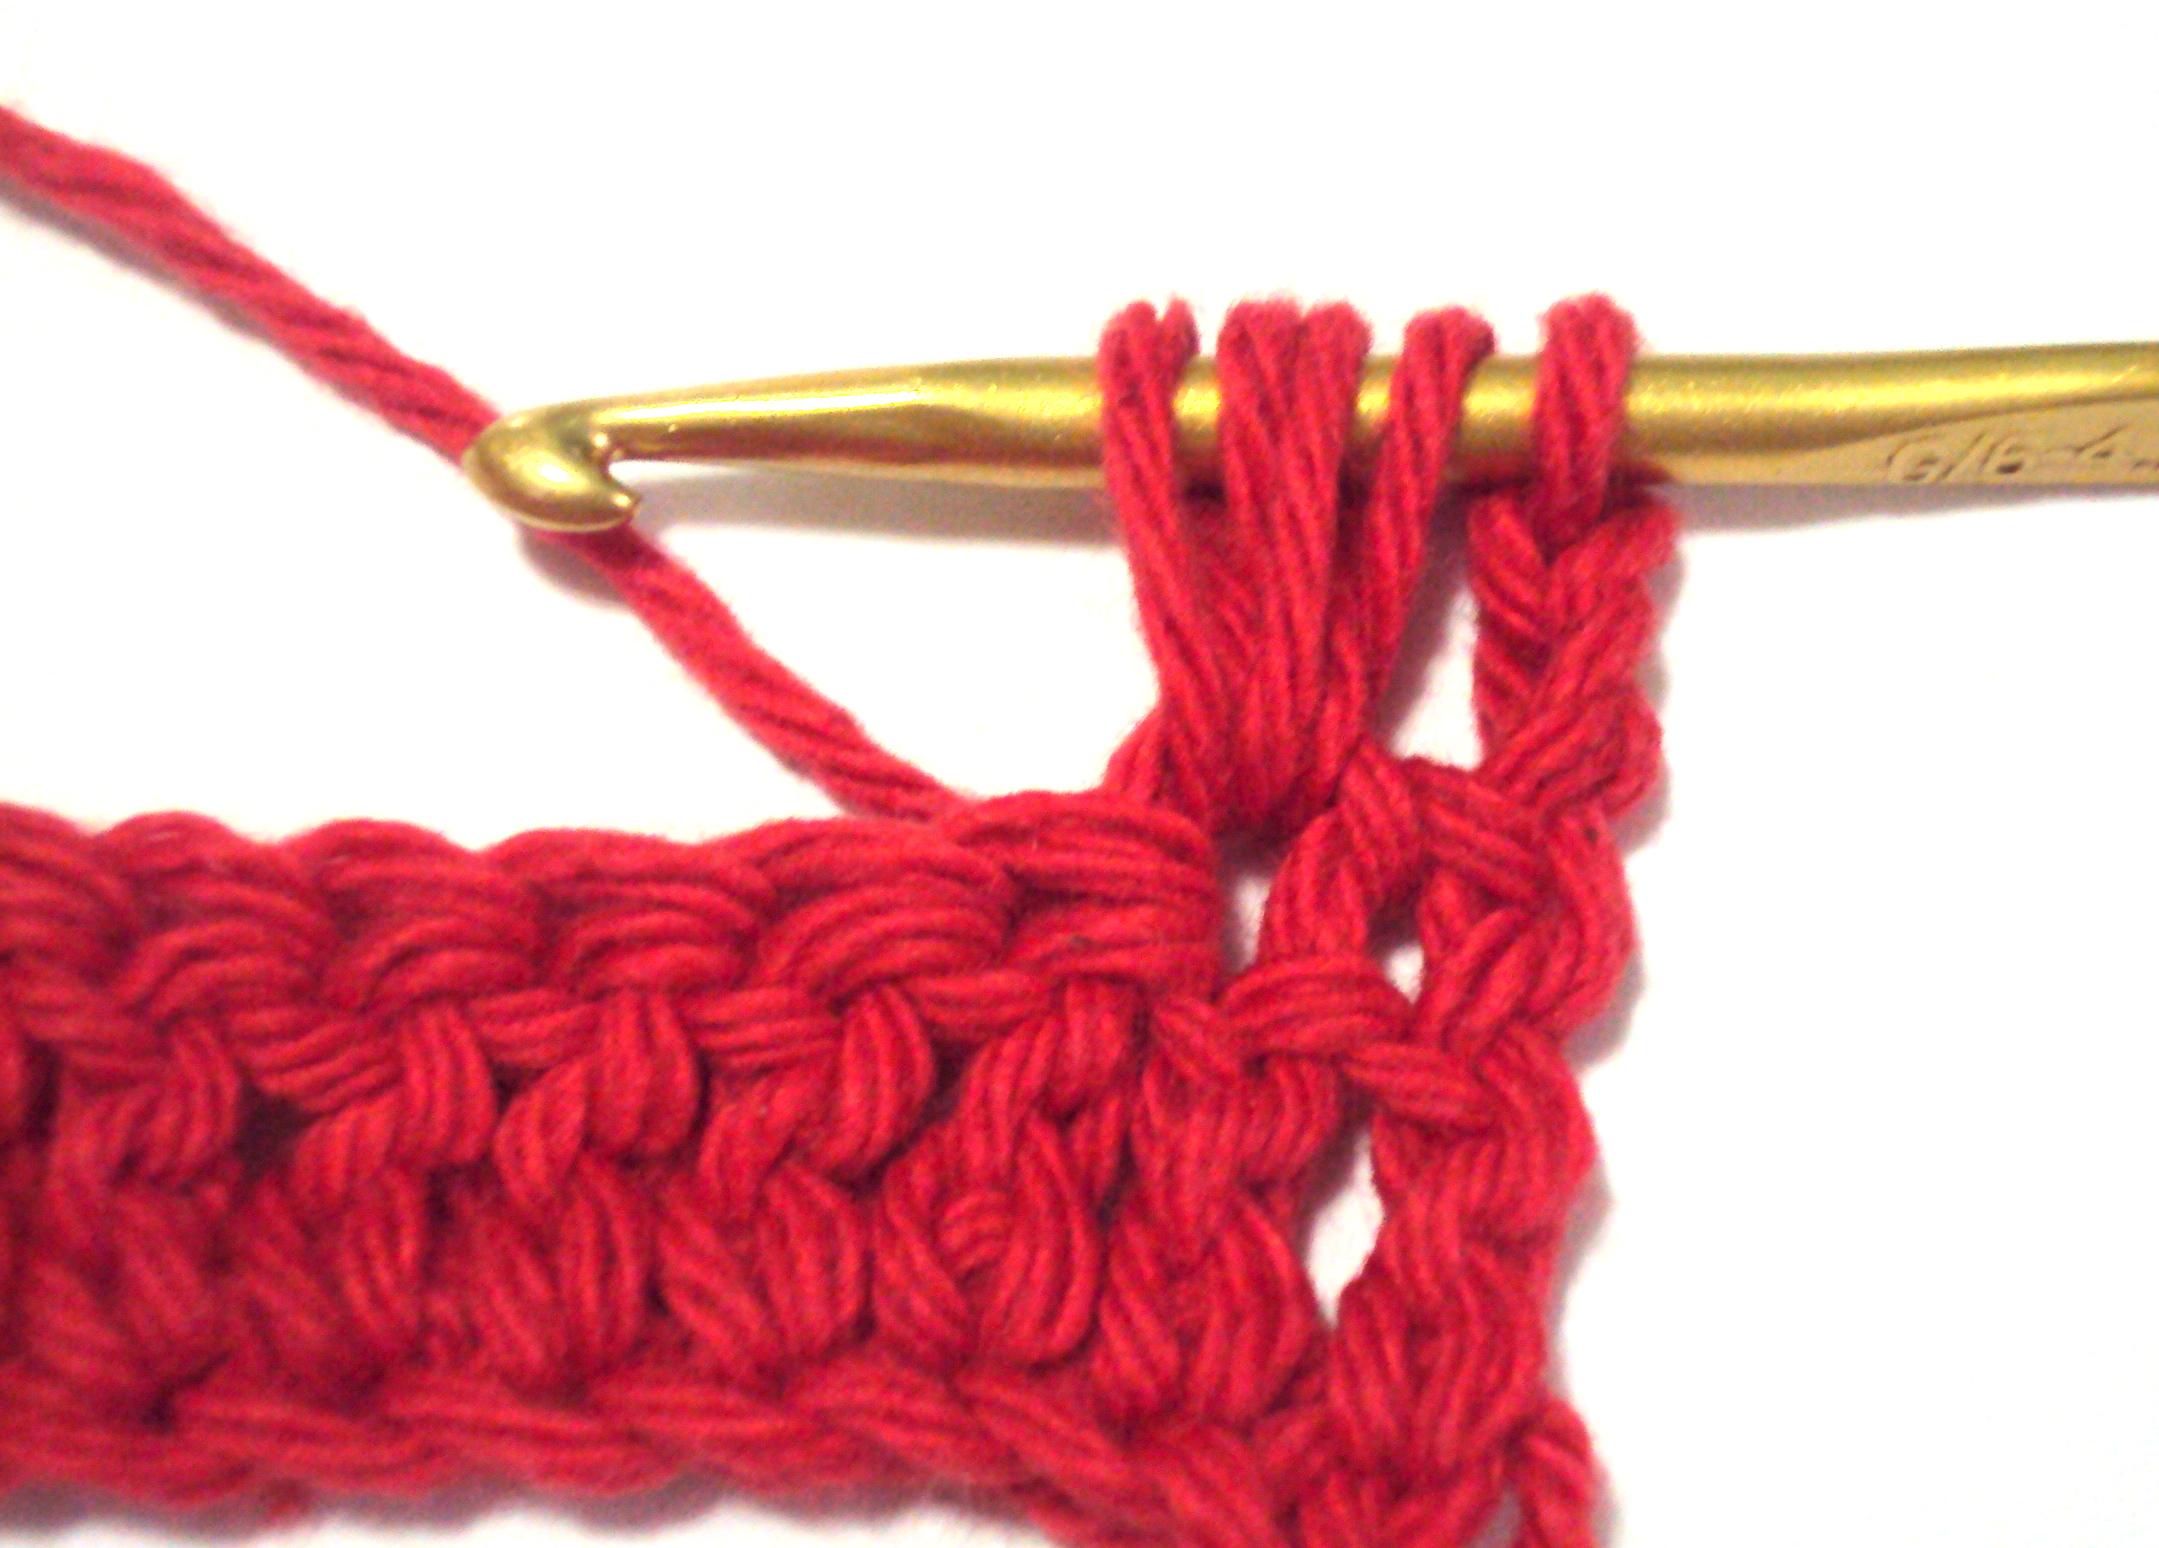 Repeat Previous Steps (yarn Over, Insert In Same Stitch Or Space, Yarn  Over, Pull Yarn Through Stitch Or Space) Pull New Loops To The Same Height  As The